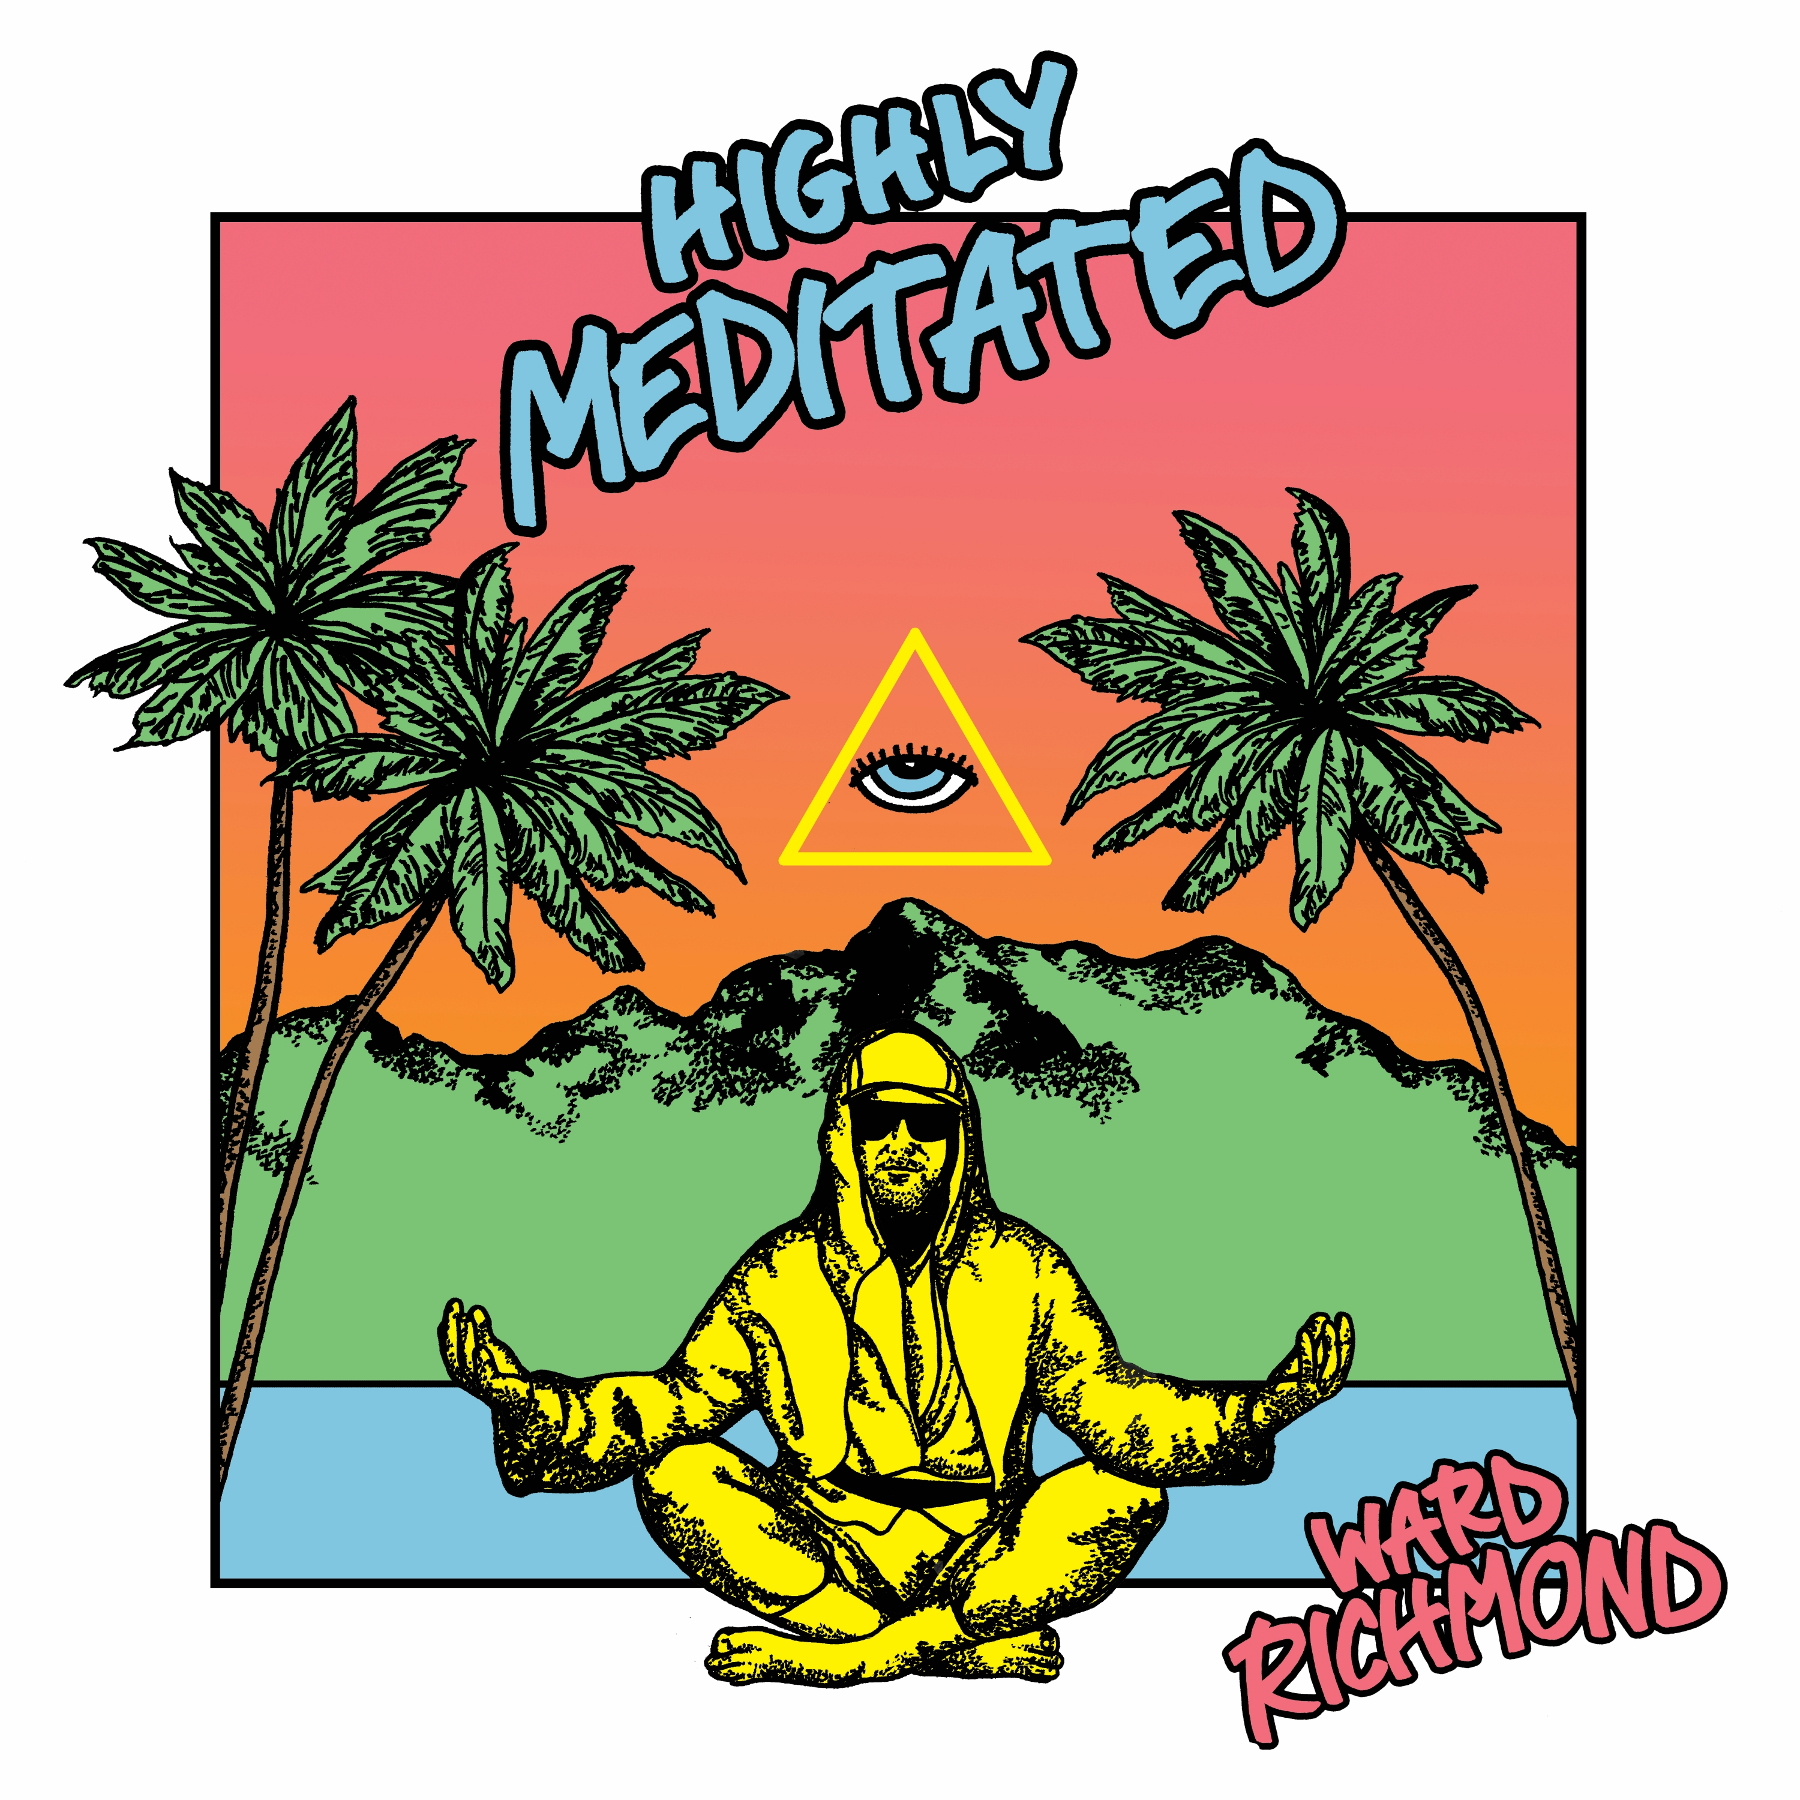 Ward Richmond - 'Highly Meditated' - cover (300dpi)